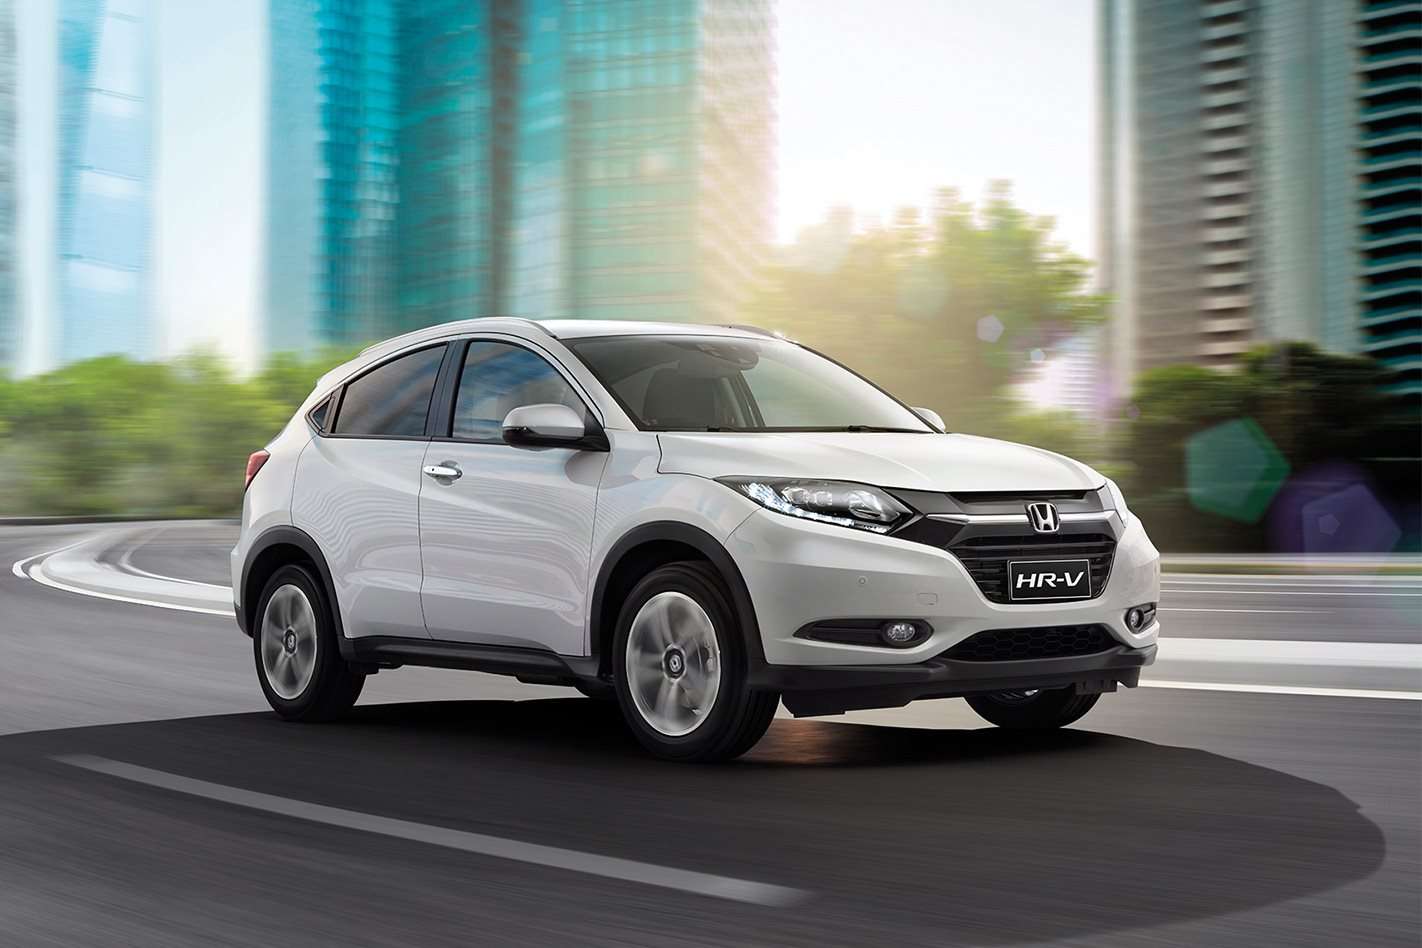 Cx 3 Vs Hrv >> Honda HRV VTI-L vs Nissan Qashqai Ti vs Citroen C4 Cactus vs Peugeot 2008: Which small SUV ...